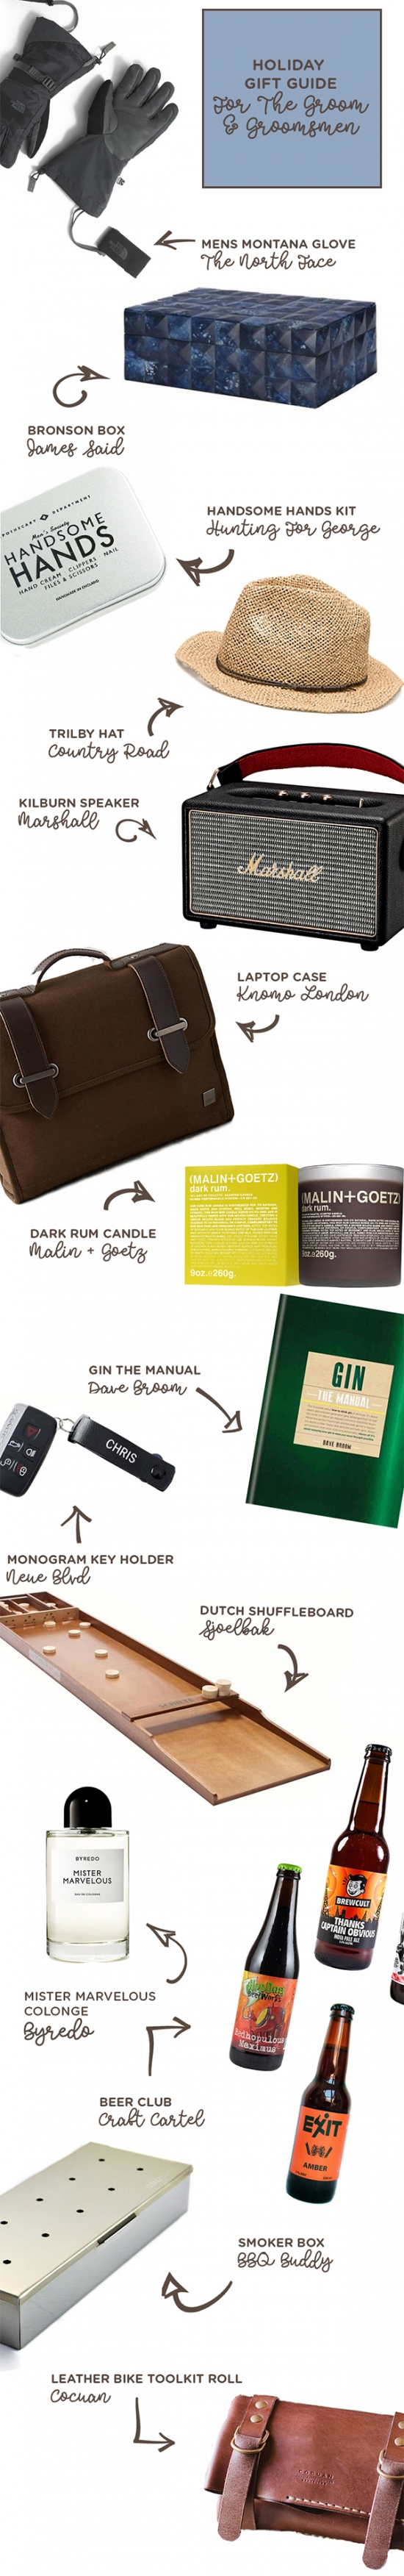 gift-ideas-for-groom-and-groomsmen